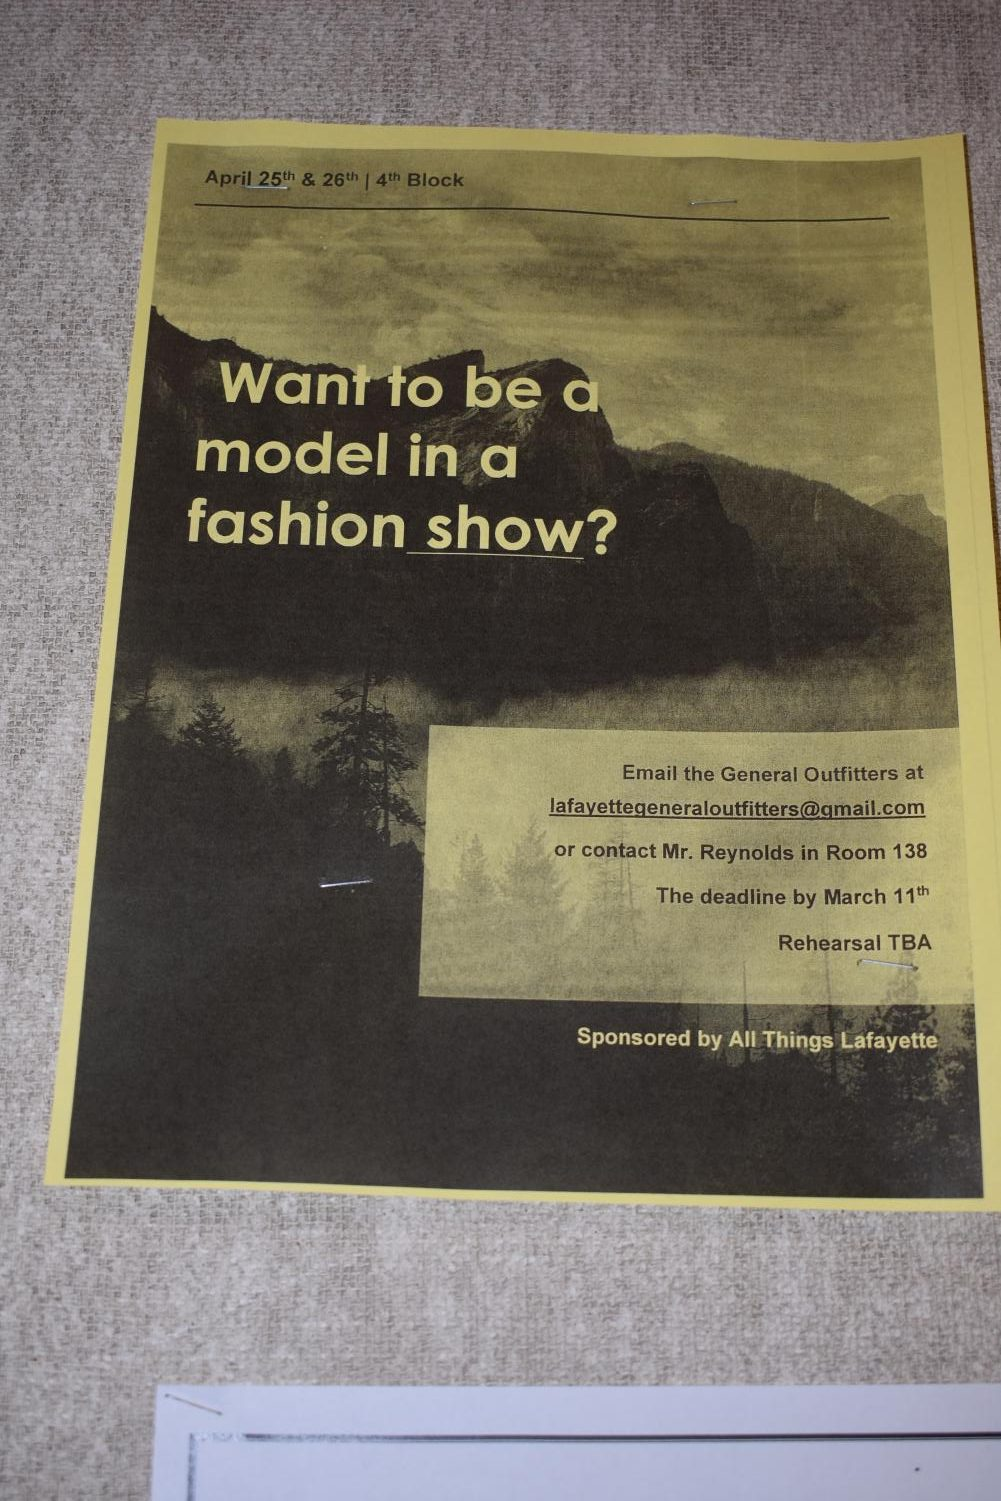 Advertisement for models for the fashion show.